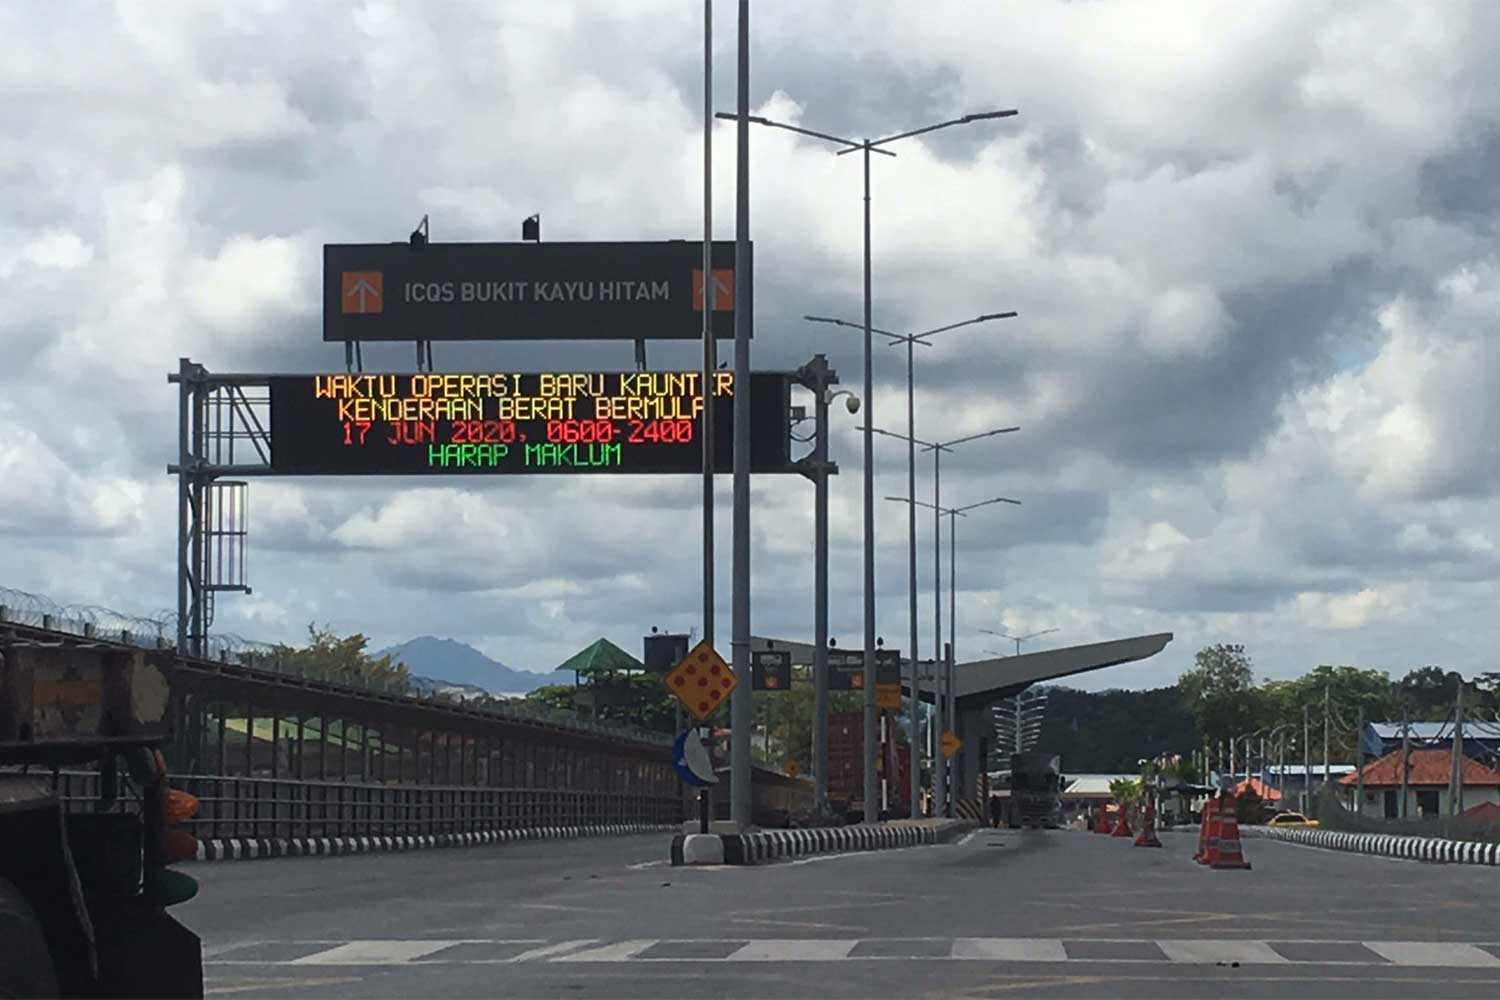 The Bukit Kayu Hitam checkpoint, opposite Sadao in Songkhla province, will be closed until Sept 25 as Malaysian authorities try to curb Covid-19 in Kedah state. (Photo by Assawin Pakkawan)